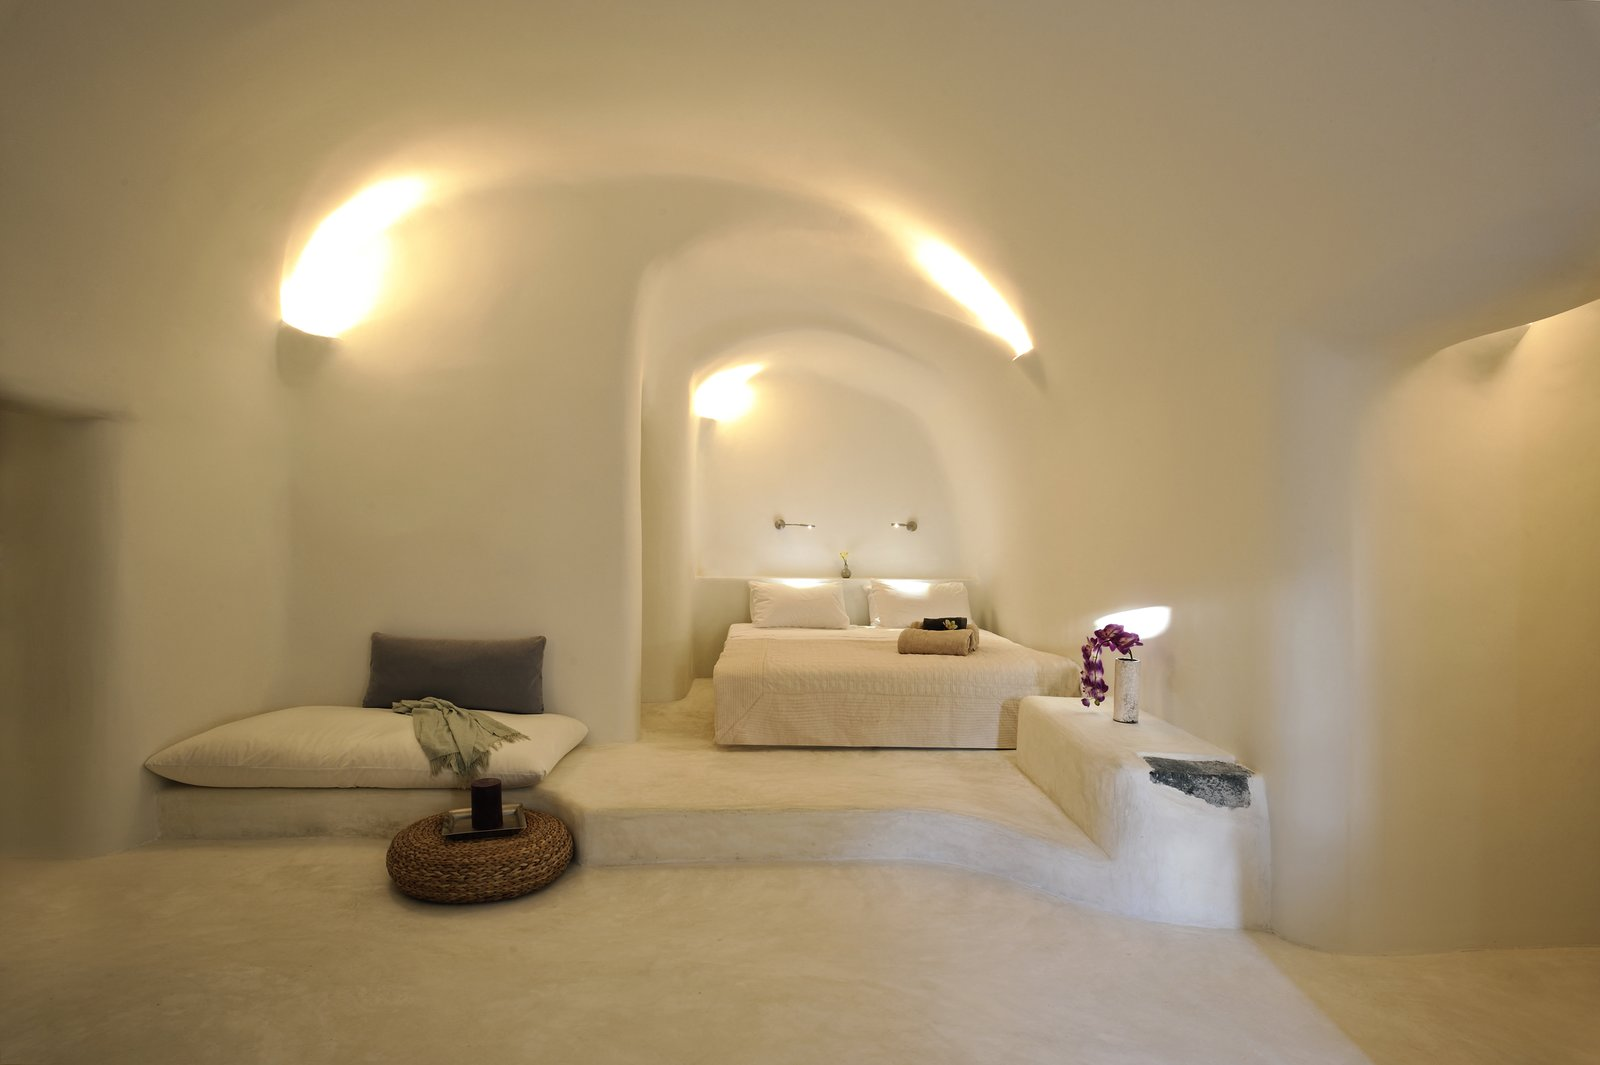 Bedroom, Bed, Concrete Floor, Bench, and Ceiling Lighting Kapari Natural Resort in the 300 year old village of Imerovigli on Santorini is pure bliss for those who like their interiors in white and earthy neutrals. The unique style of cycladic architecture comes through beautifully in the organic lines of the smooth-edged walls, floors and ceilings.  Photo 9 of 11 in Ever Wanted to Stay in a Cave That's Actually Pretty Modern Inside?